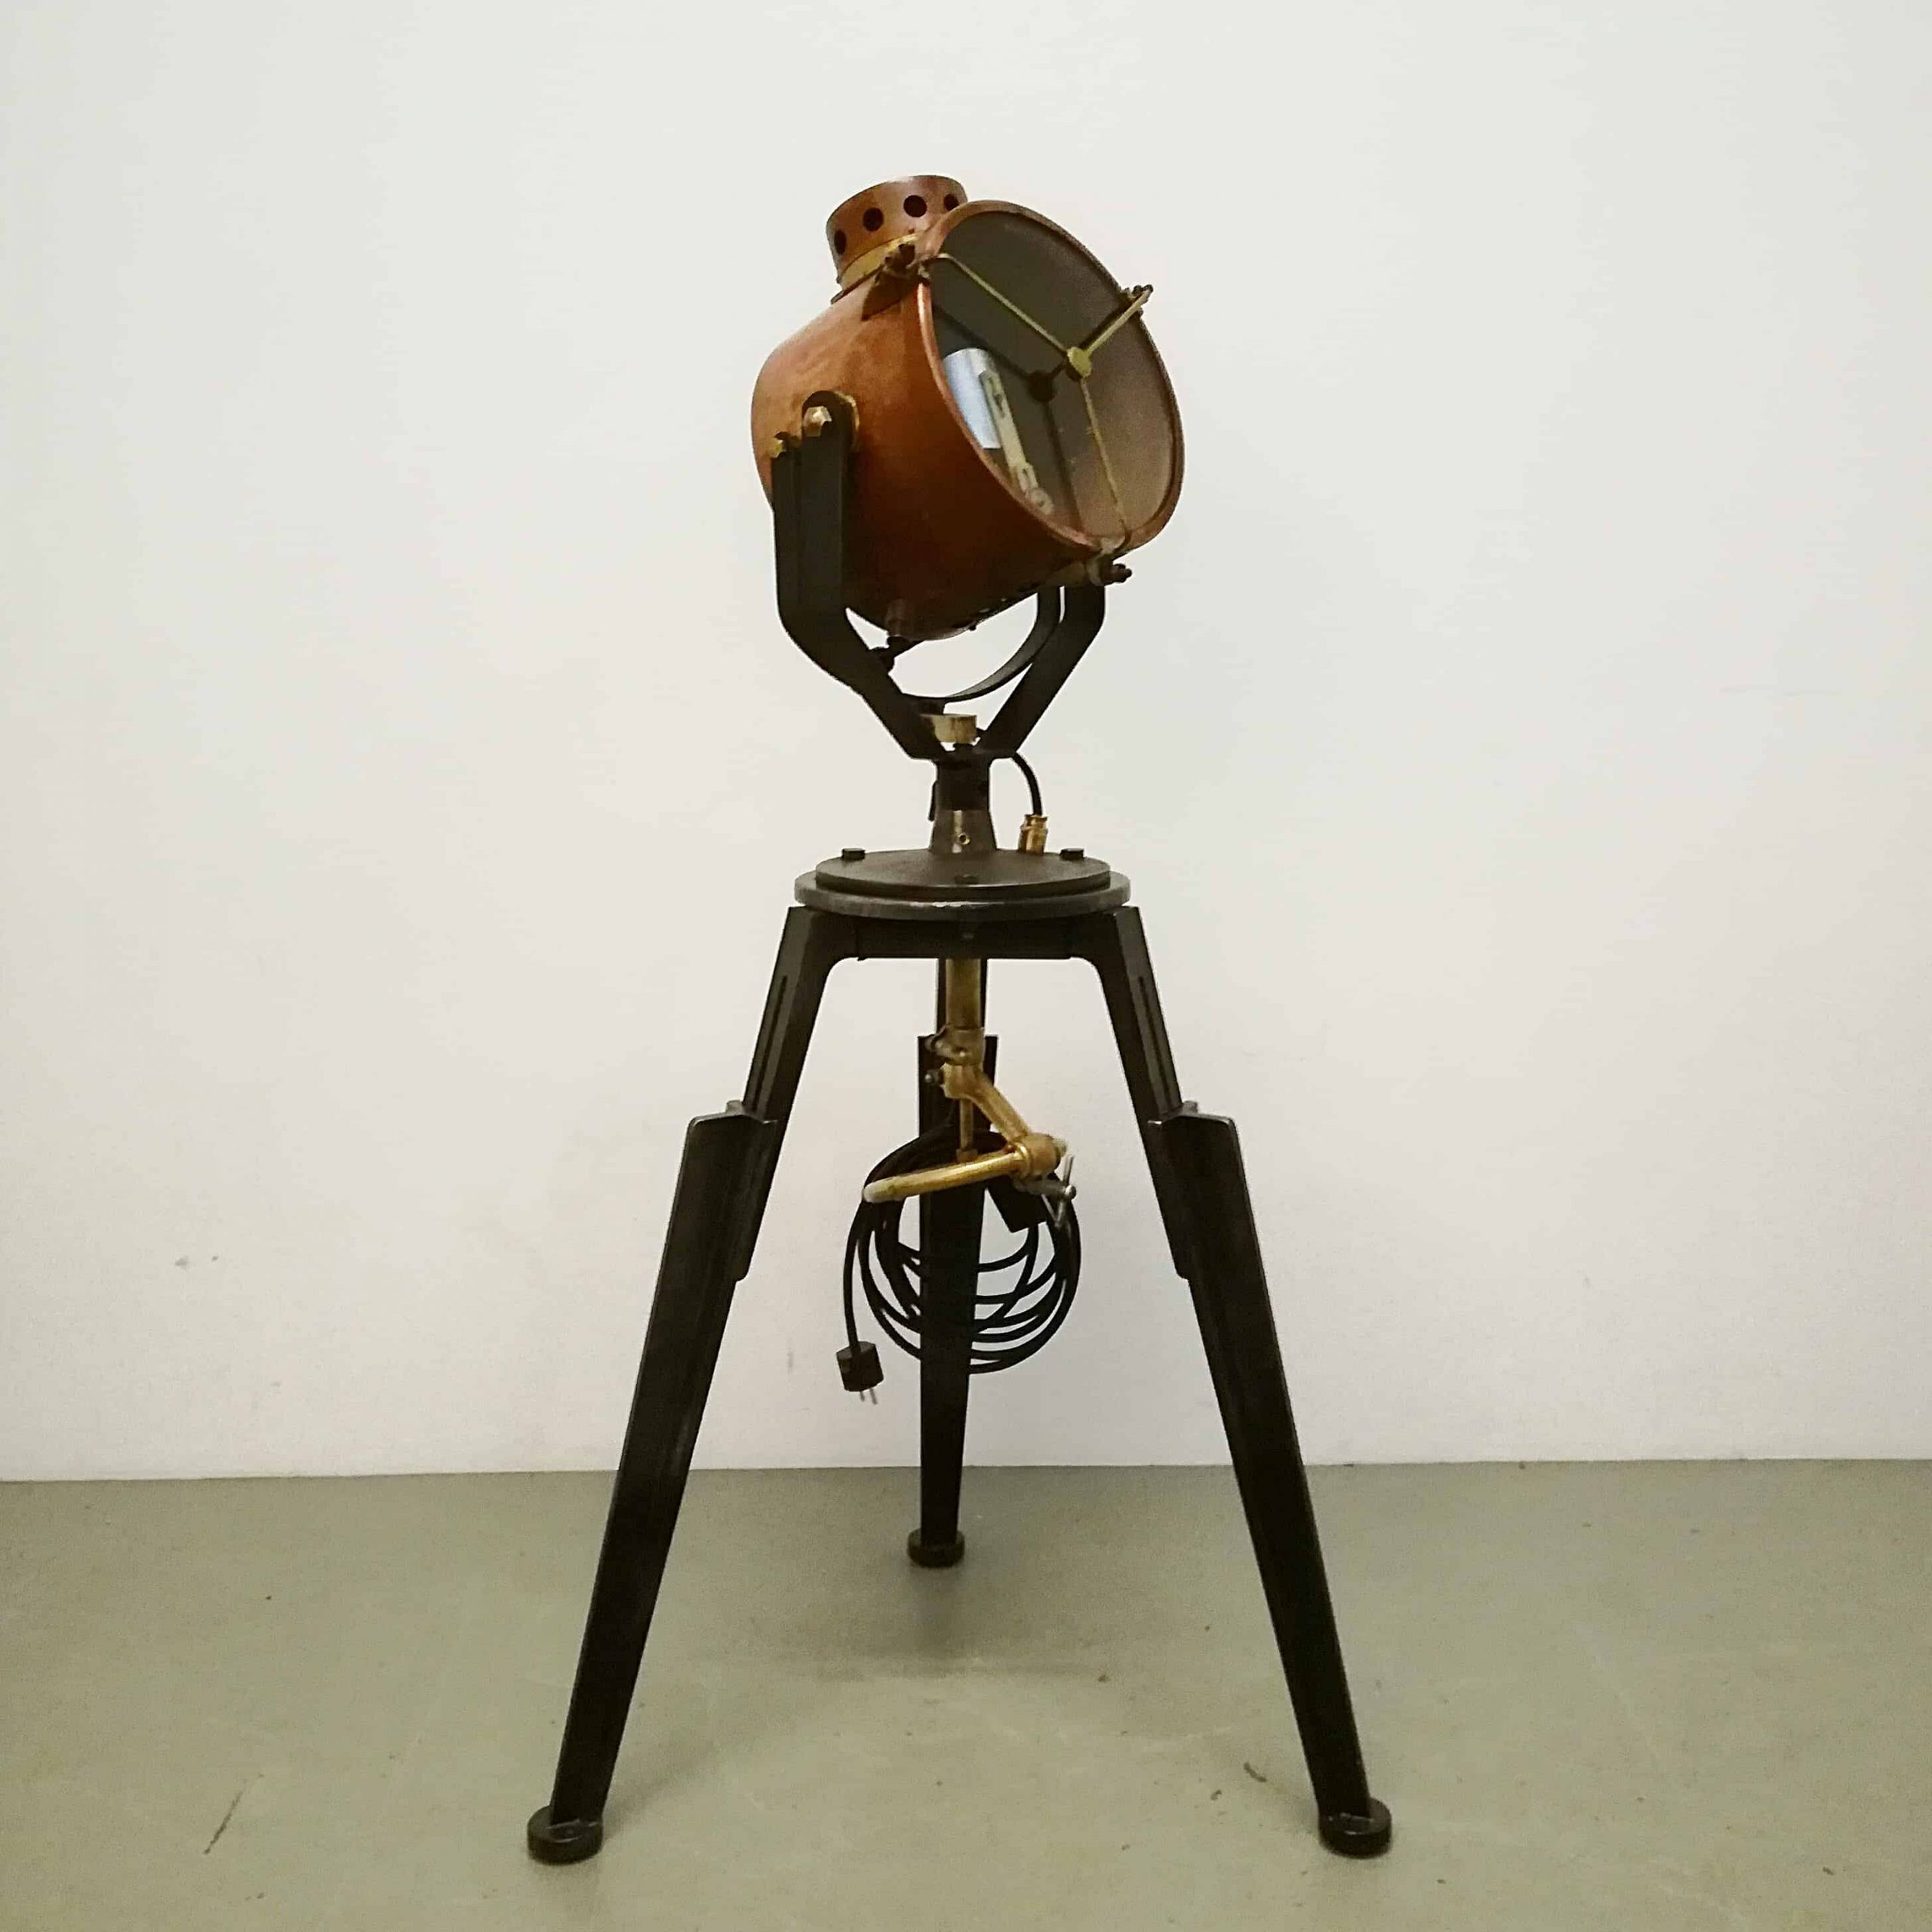 lamp-standing-spotlight-self-made-industrial-adjustable